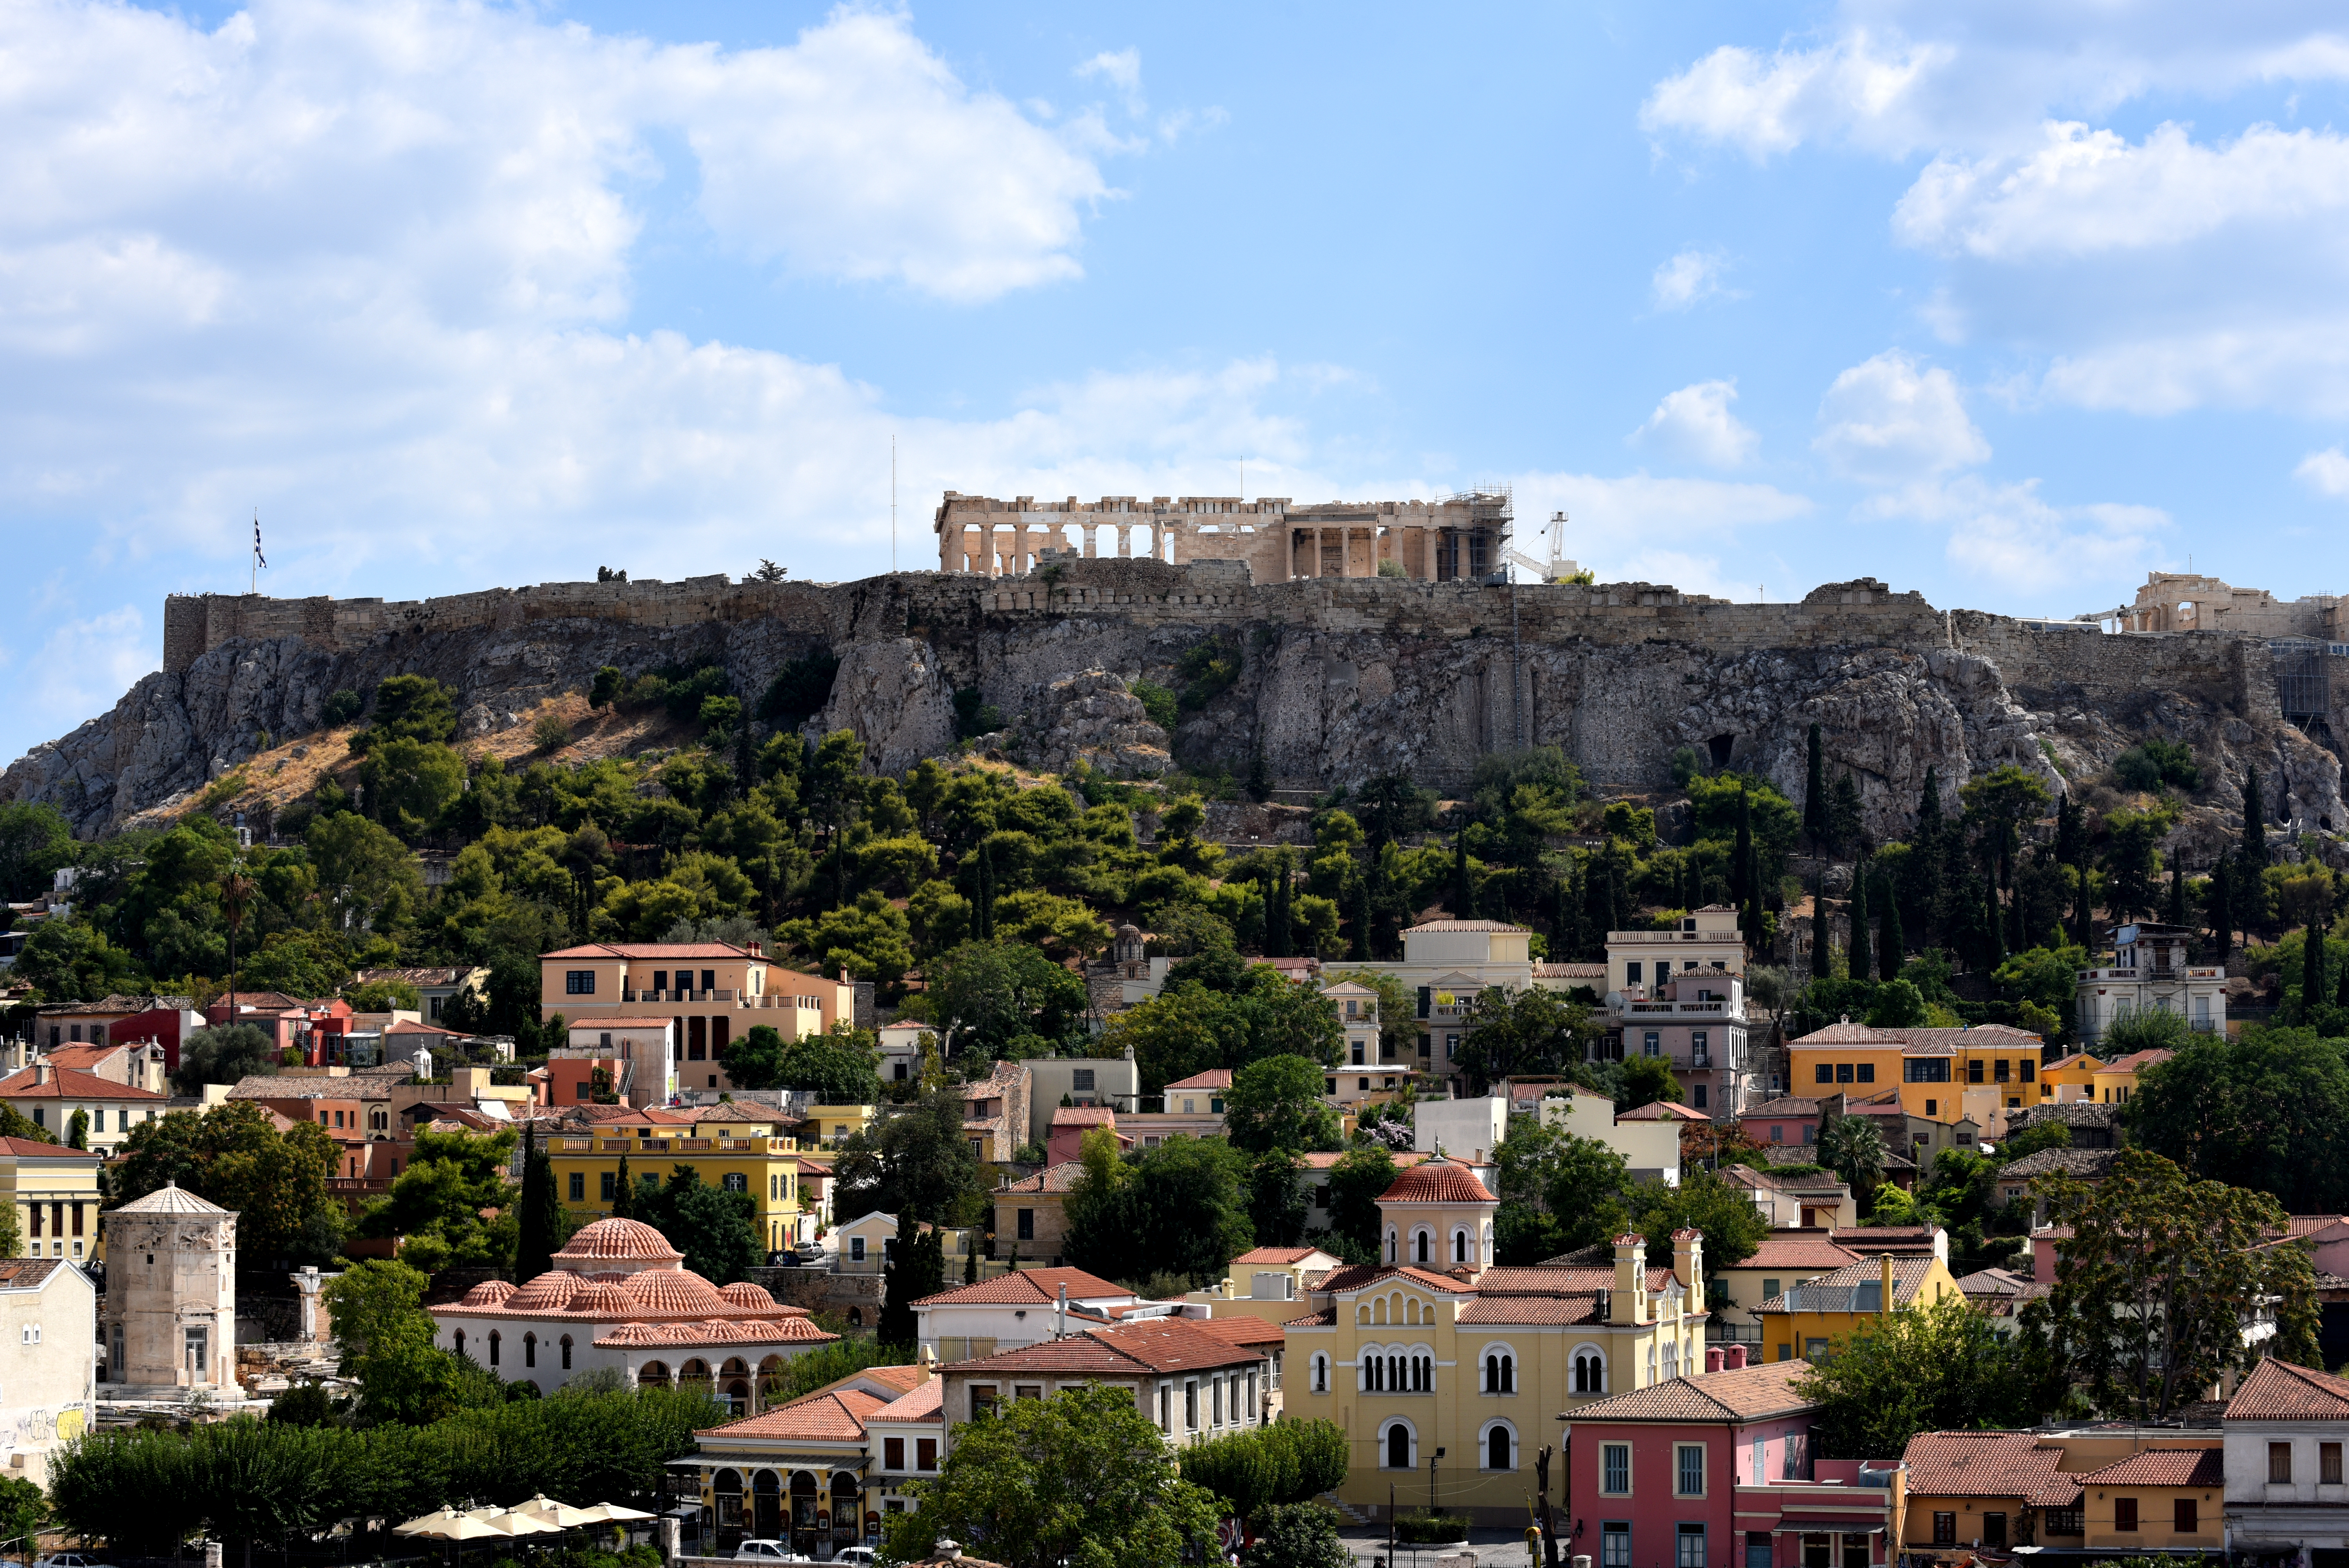 The Glory of The Acropolis